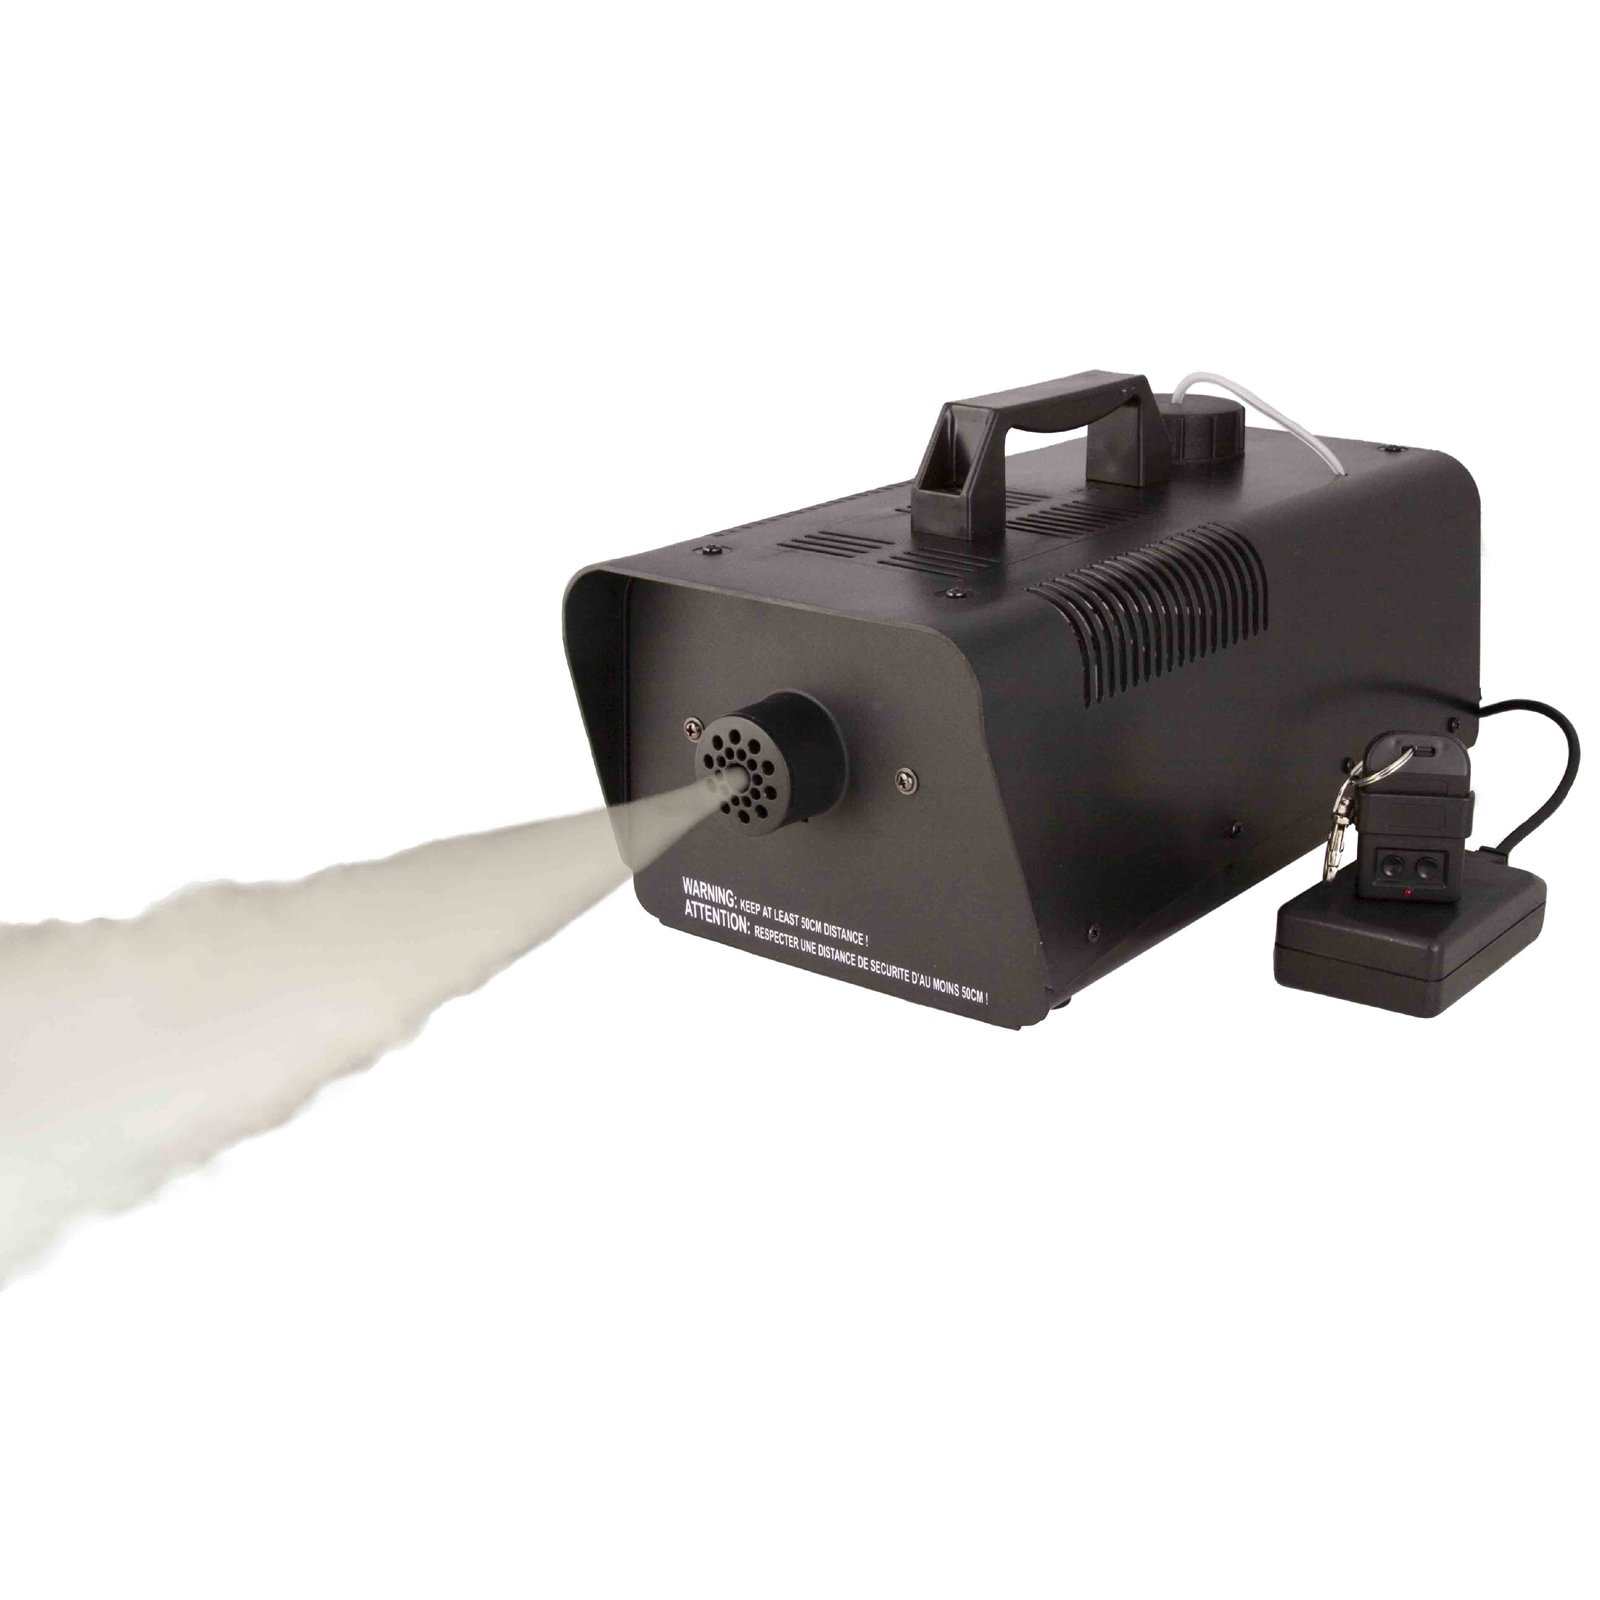 Fog Machines, Electric Popcorn Poppers, Popcorn Popper, Vending Machines Uk